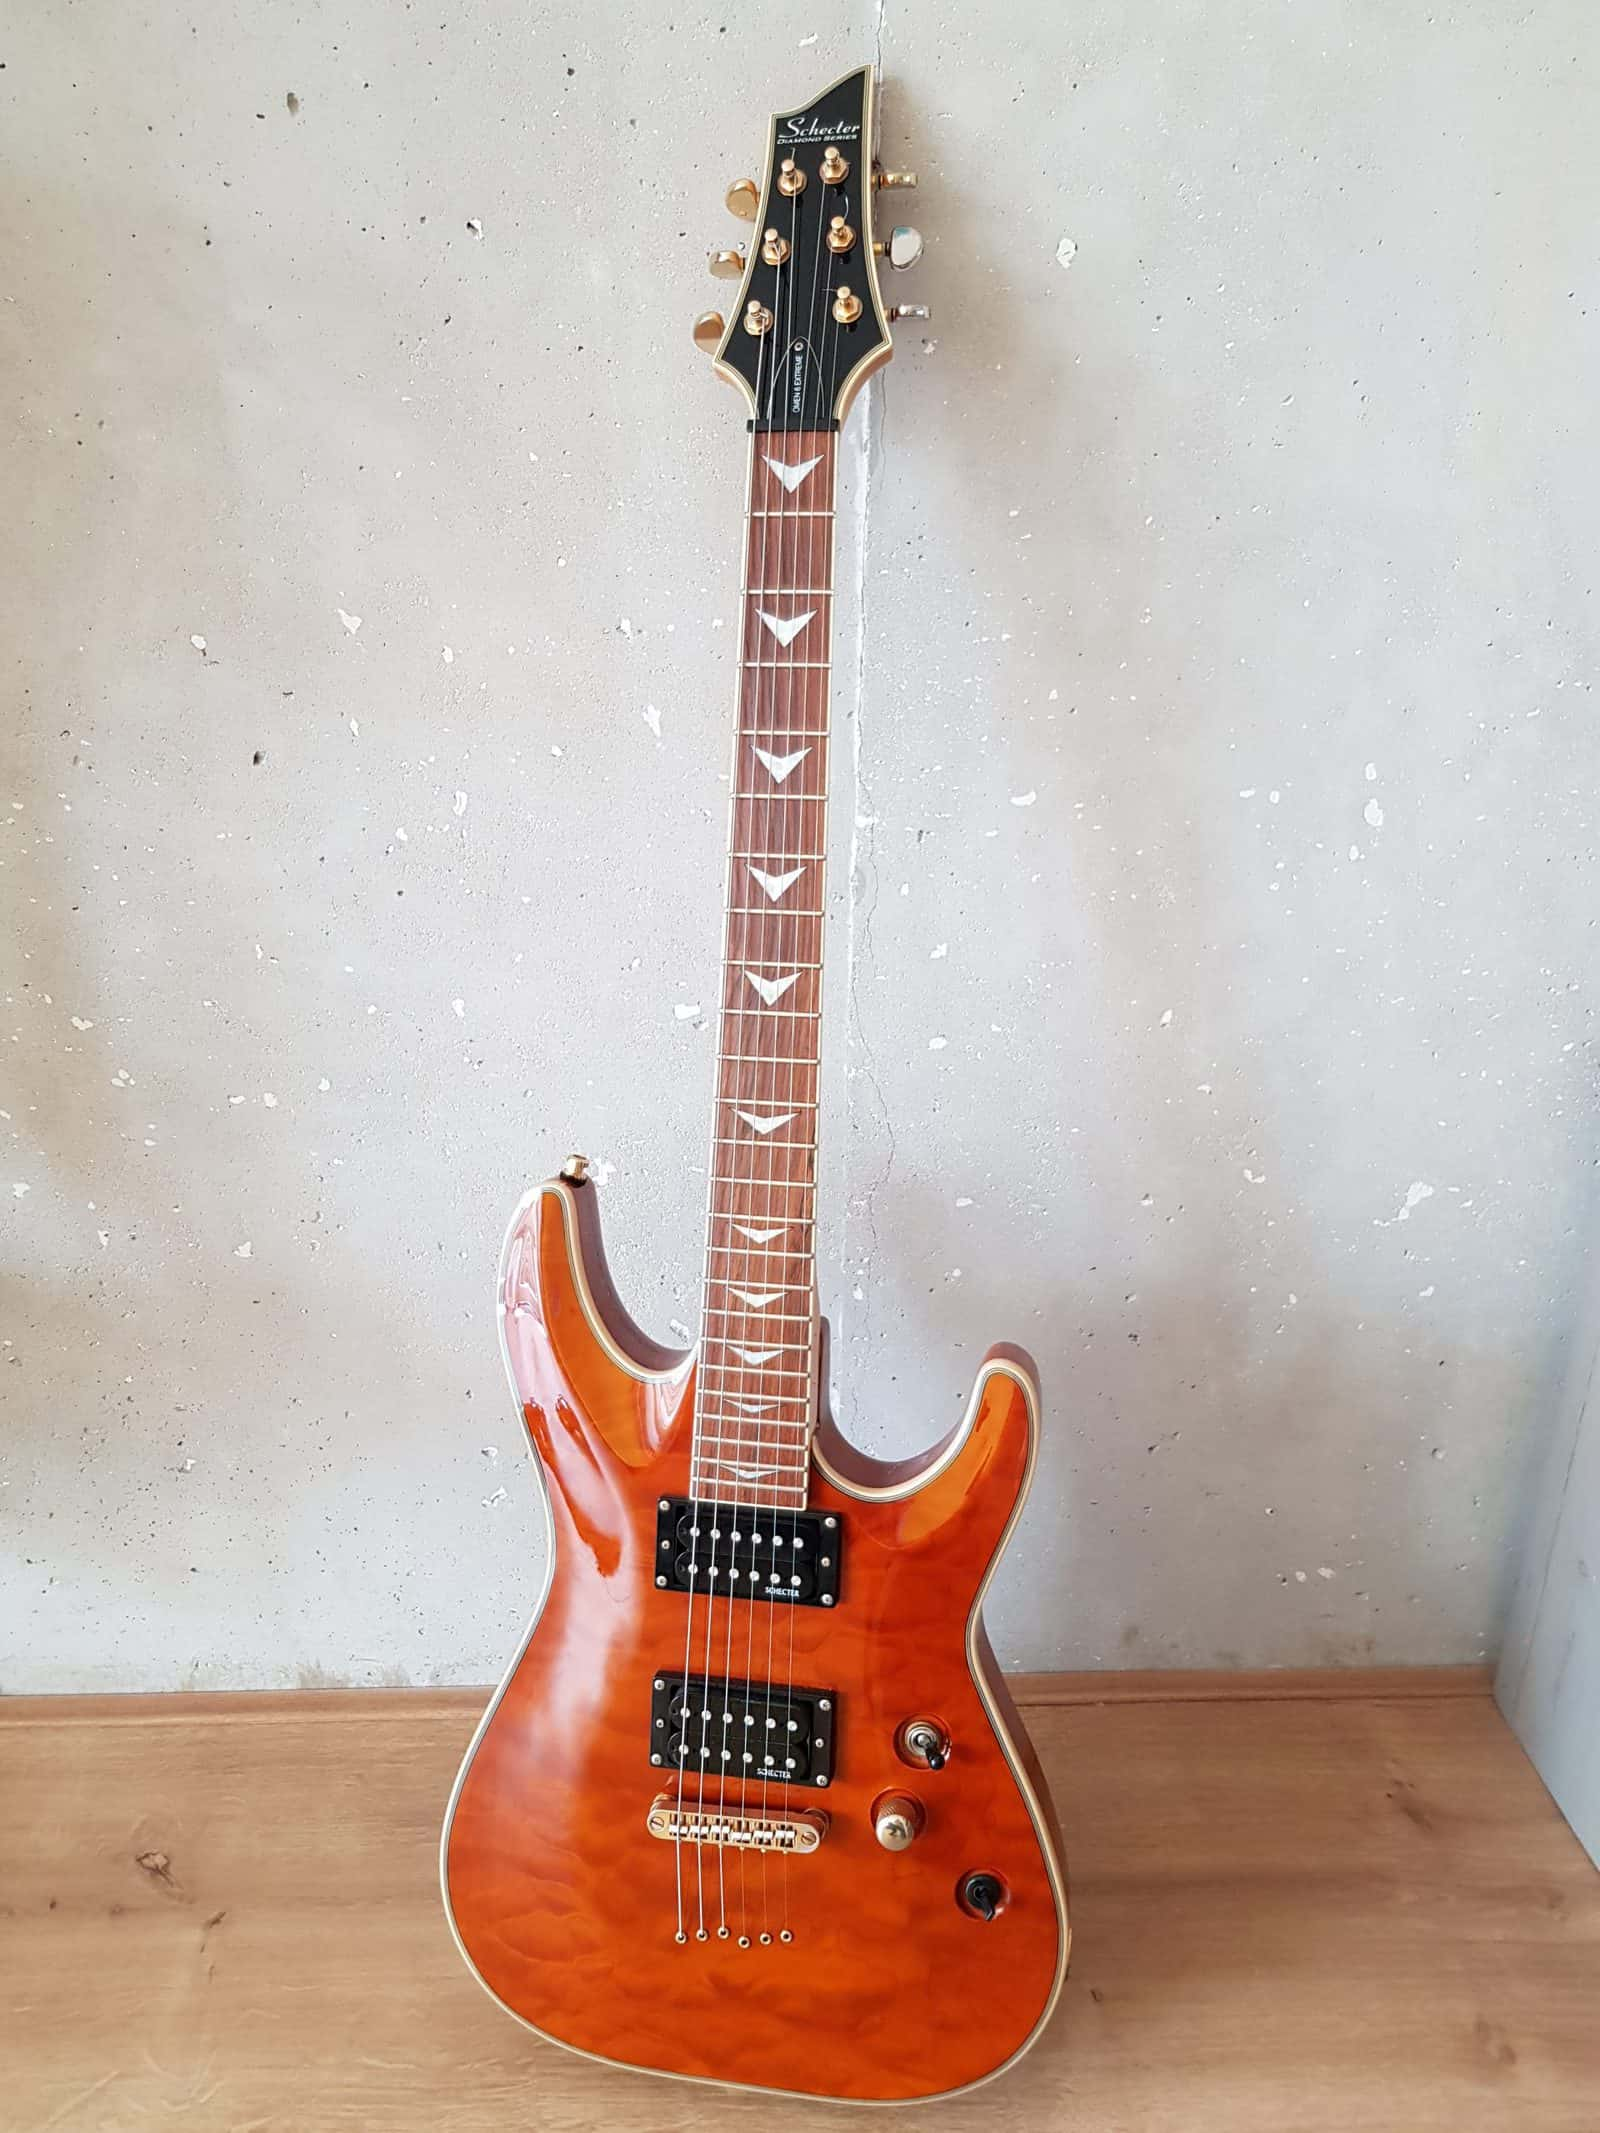 Best hard rock guitar under 500 euro: Schecter Omen Extreme 6